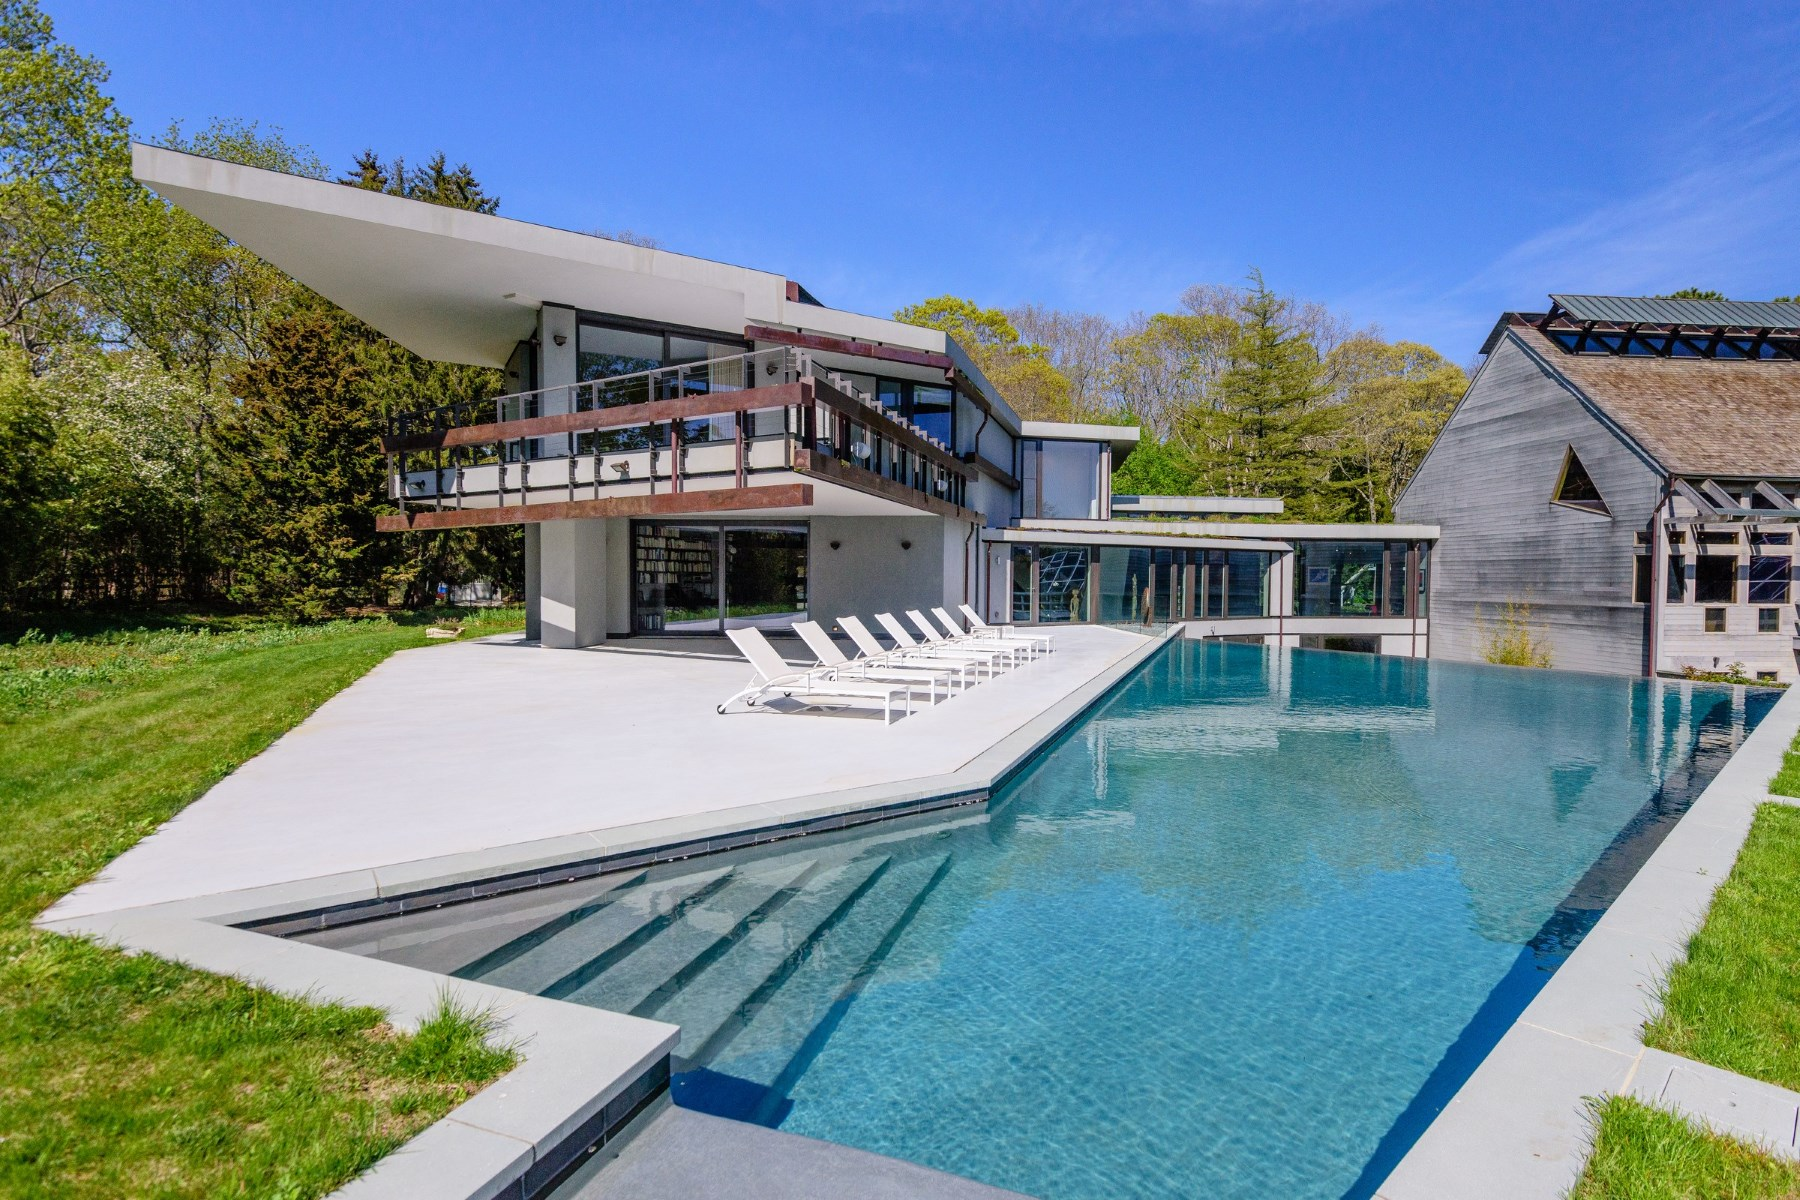 Single Family Home for Sale at Modern Masterpiece, Park-Like Setting Wainscott, New York, 11975 United States